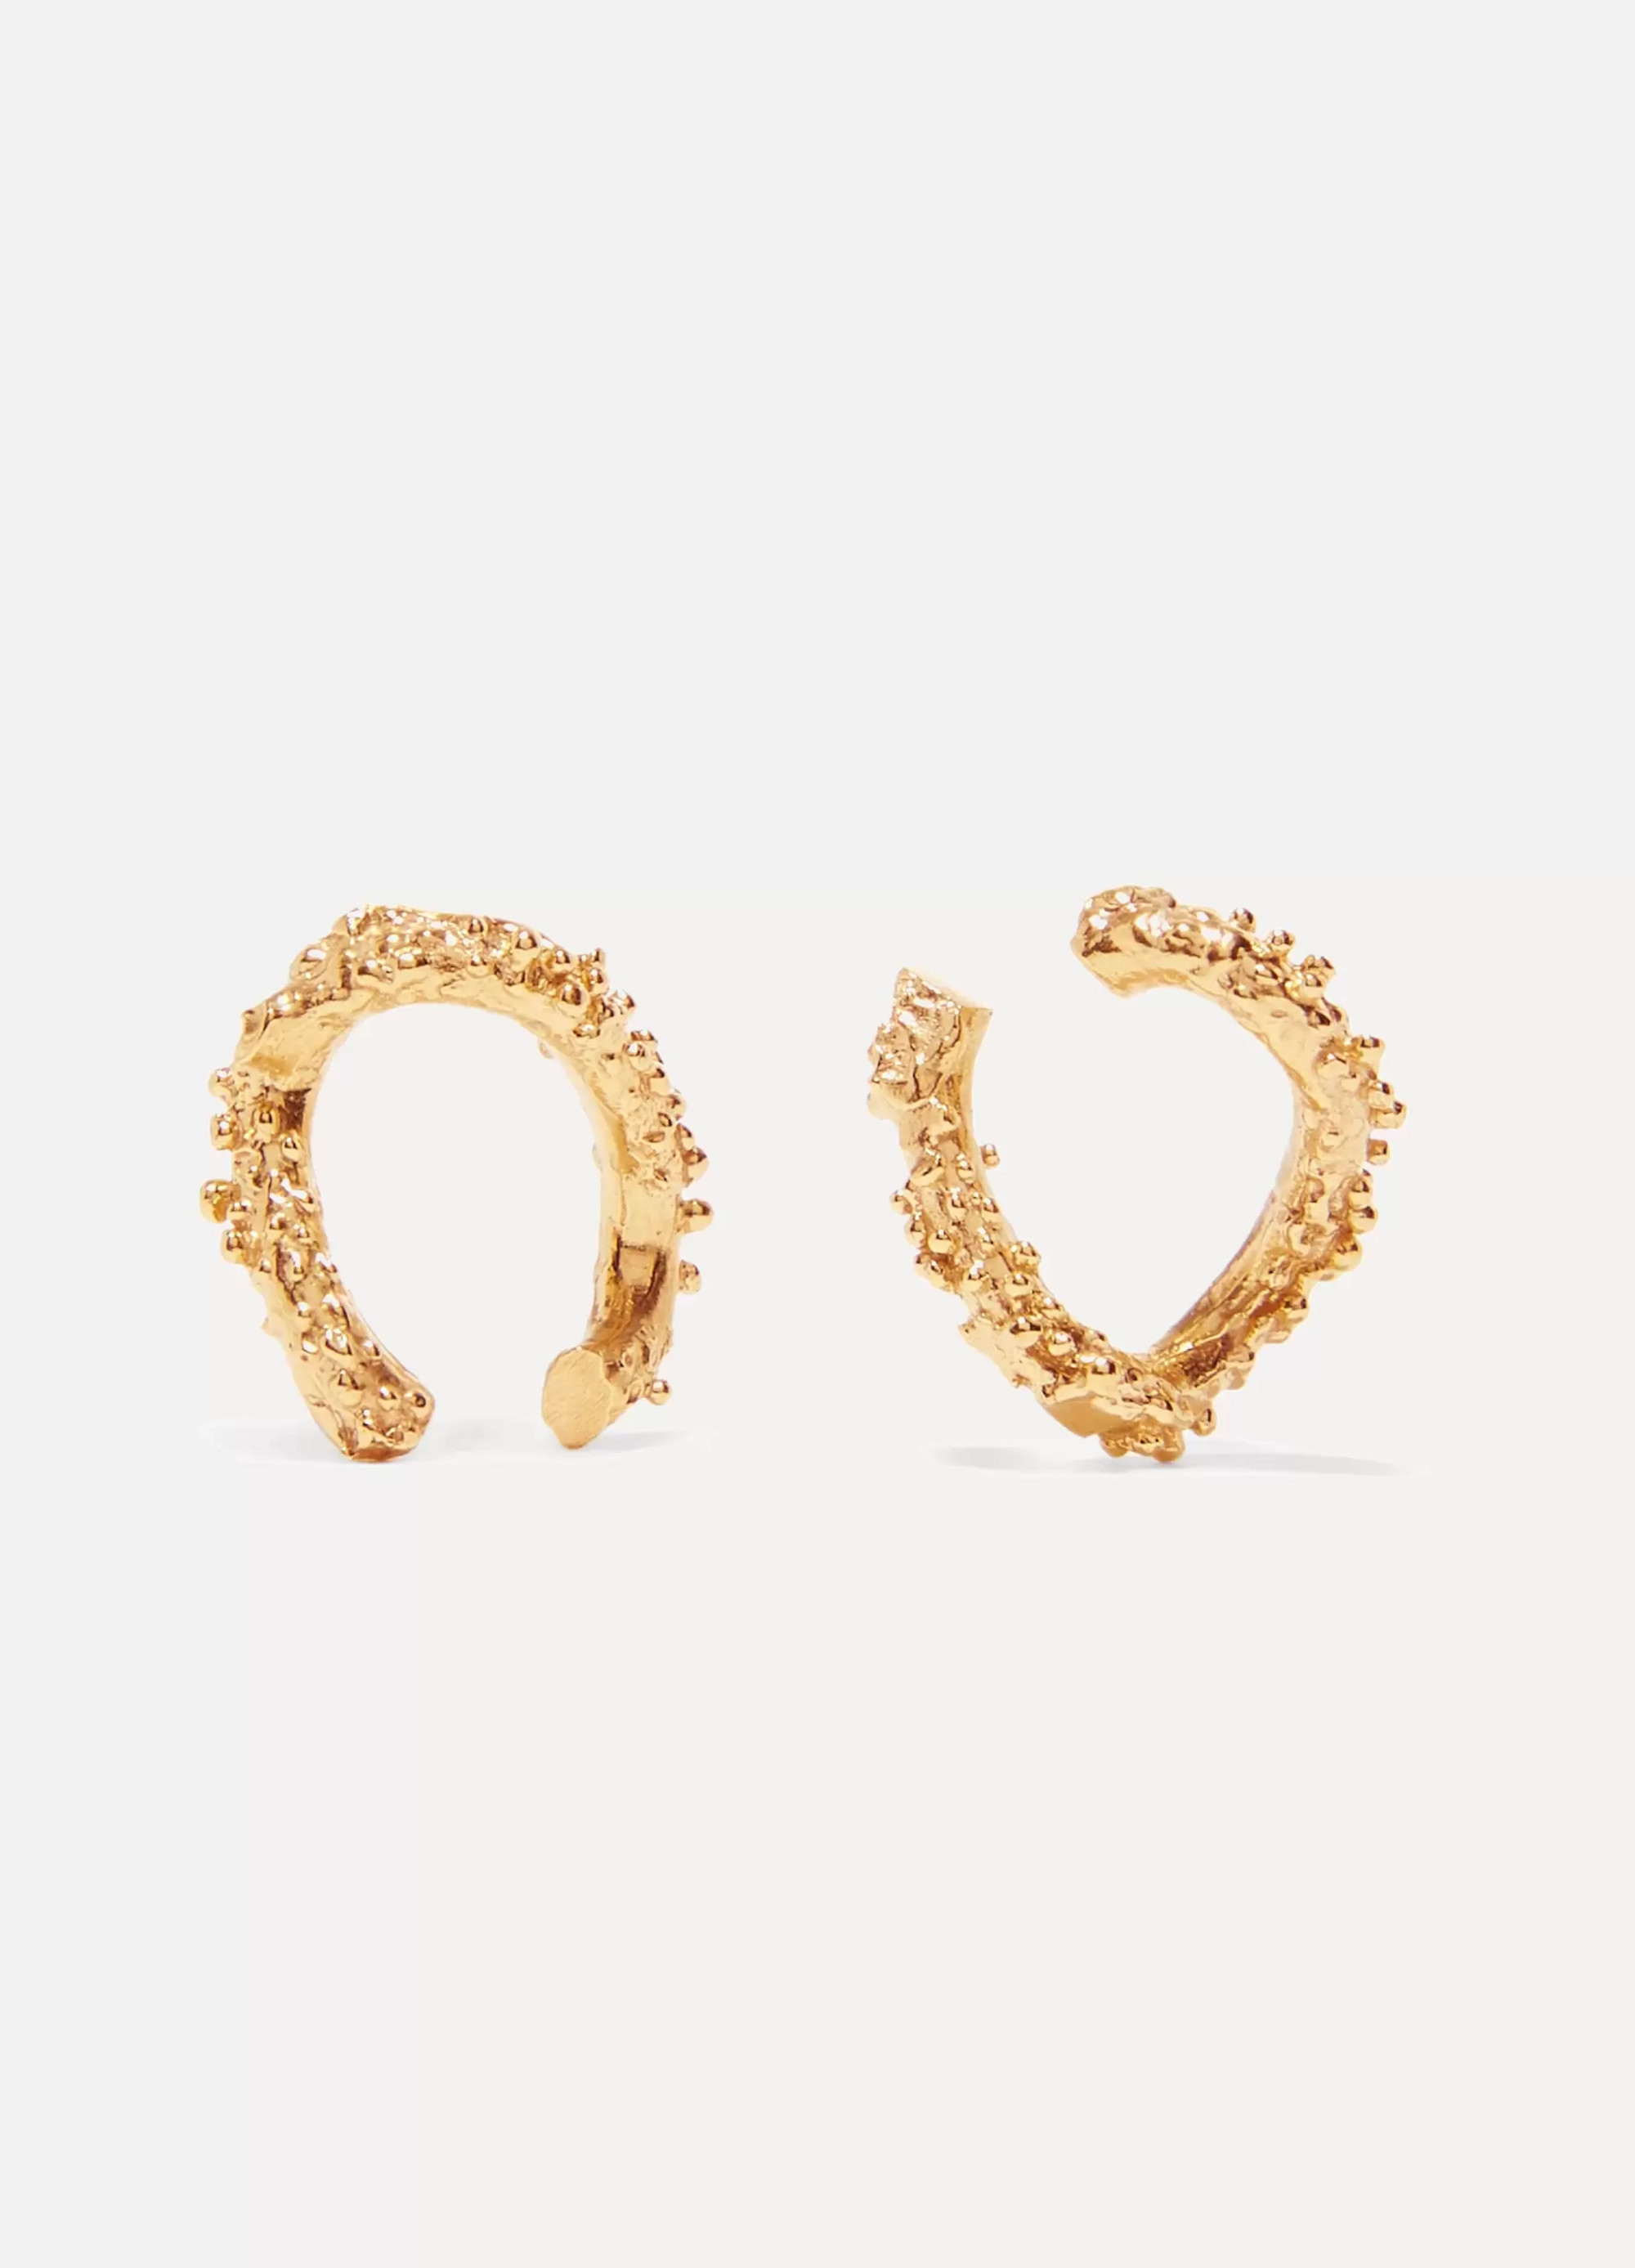 Alighieri The Night Shift gold-plated earrings